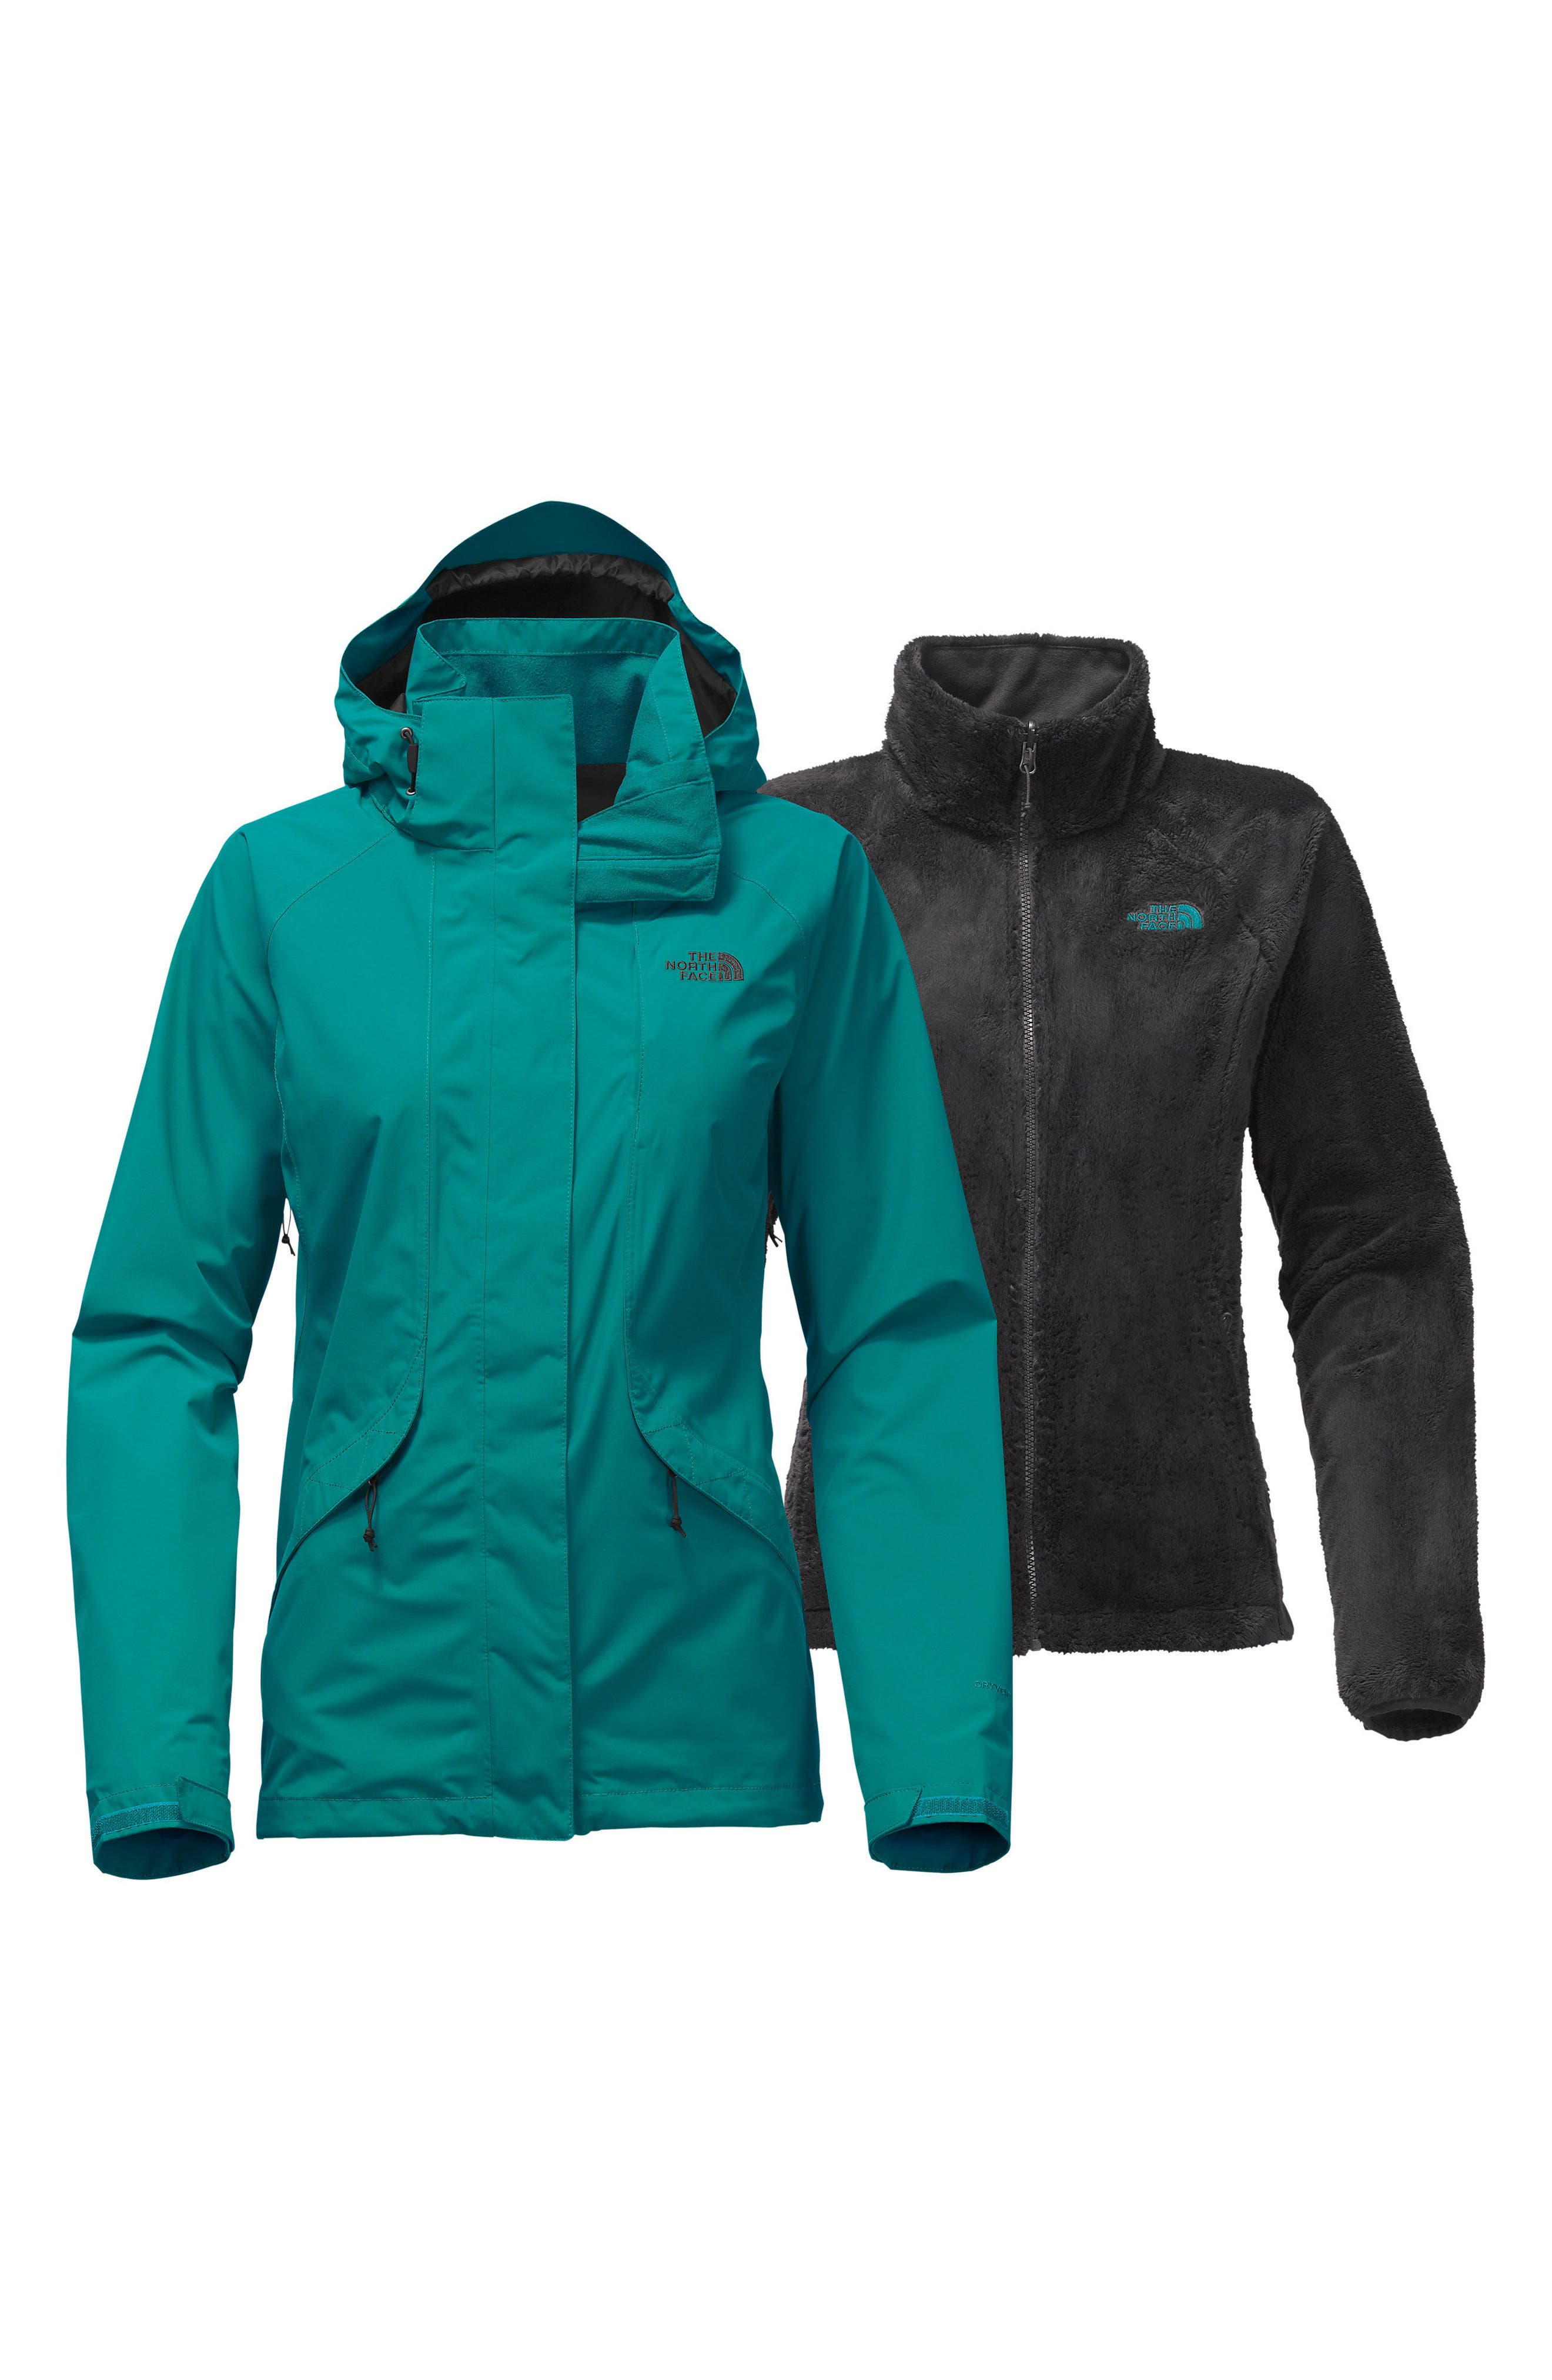 Boundary Triclimate<sup>®</sup> 3-in-1 Jacket,                             Alternate thumbnail 8, color,                             Harbor Blue